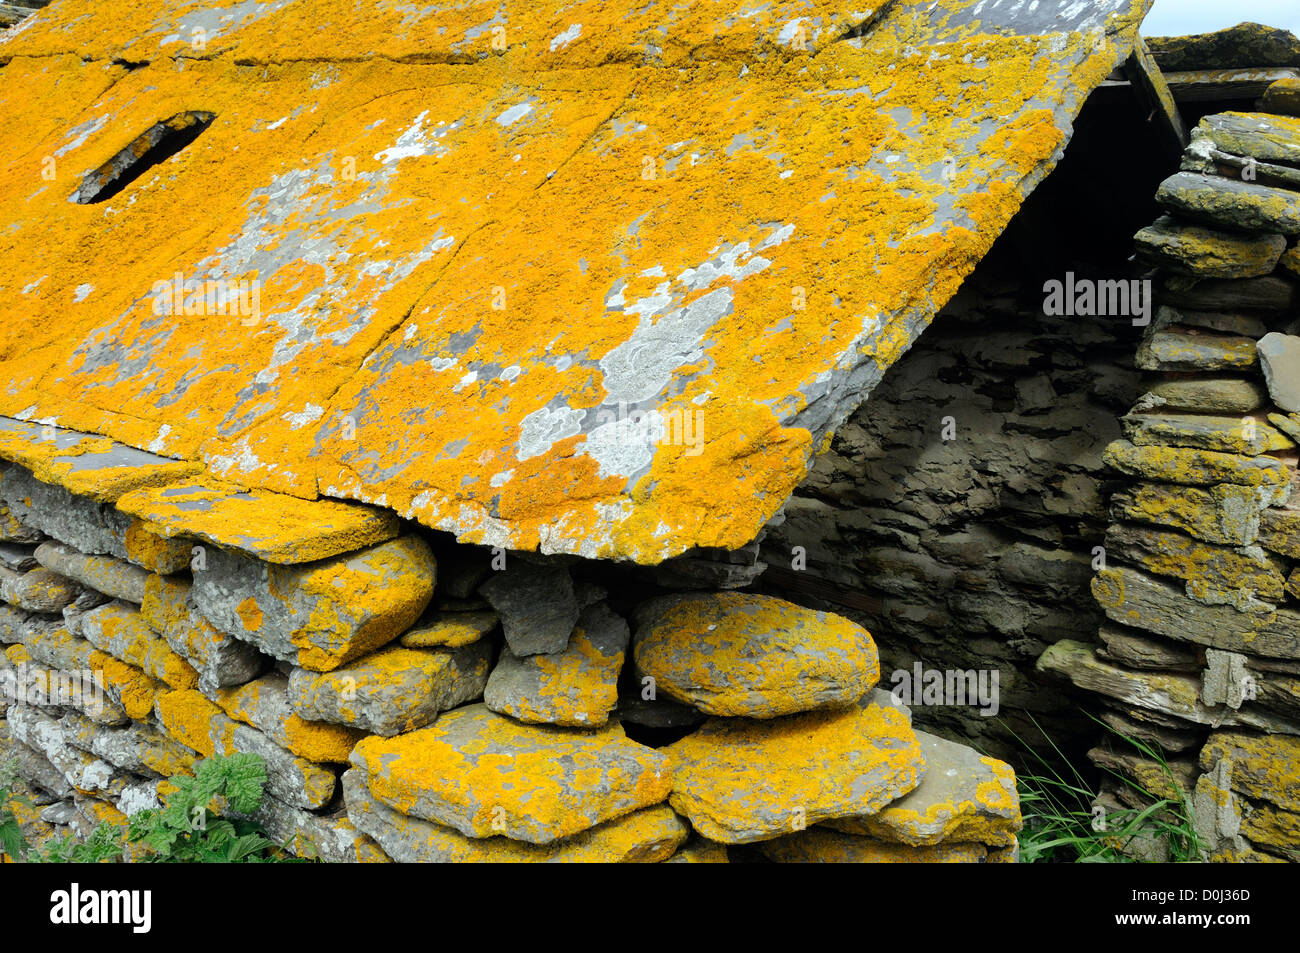 Split stone slabs covered in orange lichen used as roofing tiles on a derelict stone hut.  Mainland, Orkney, Scotland Stock Photo